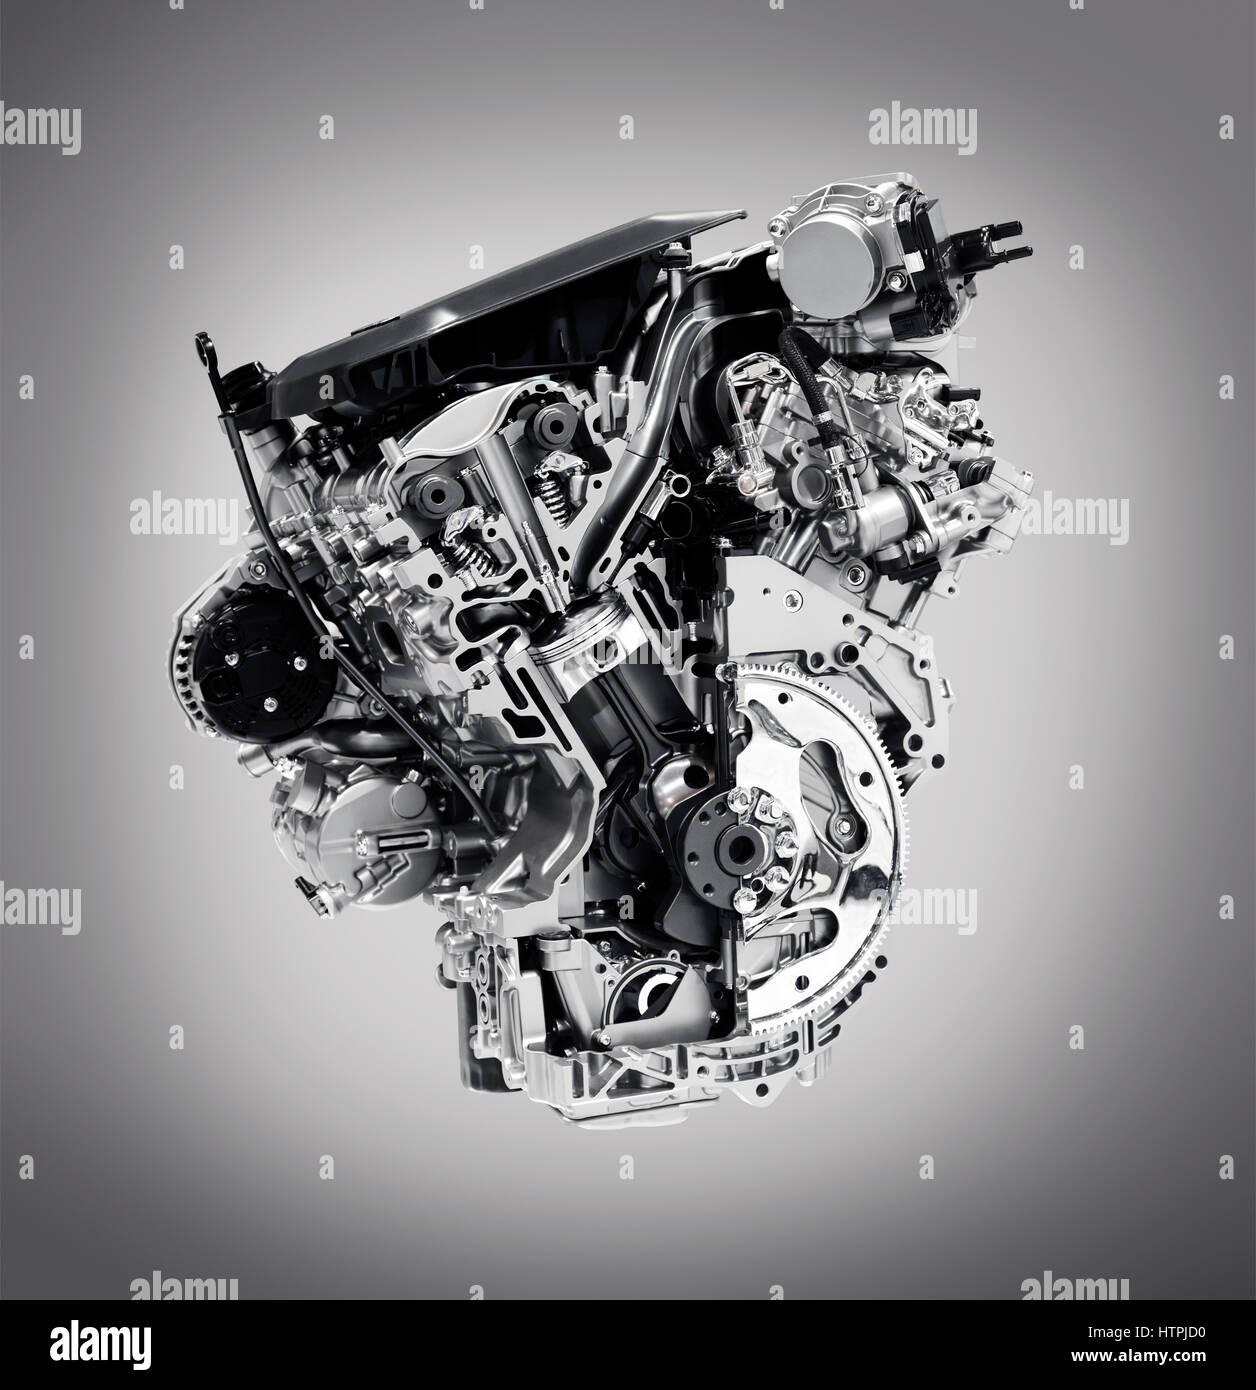 Single Cylinder Engine Stock Photos 3 6l V6 Diagram Cross Section Of 2017 Buick Lacrosse 36l Vvt Di 310hp Car Showing The